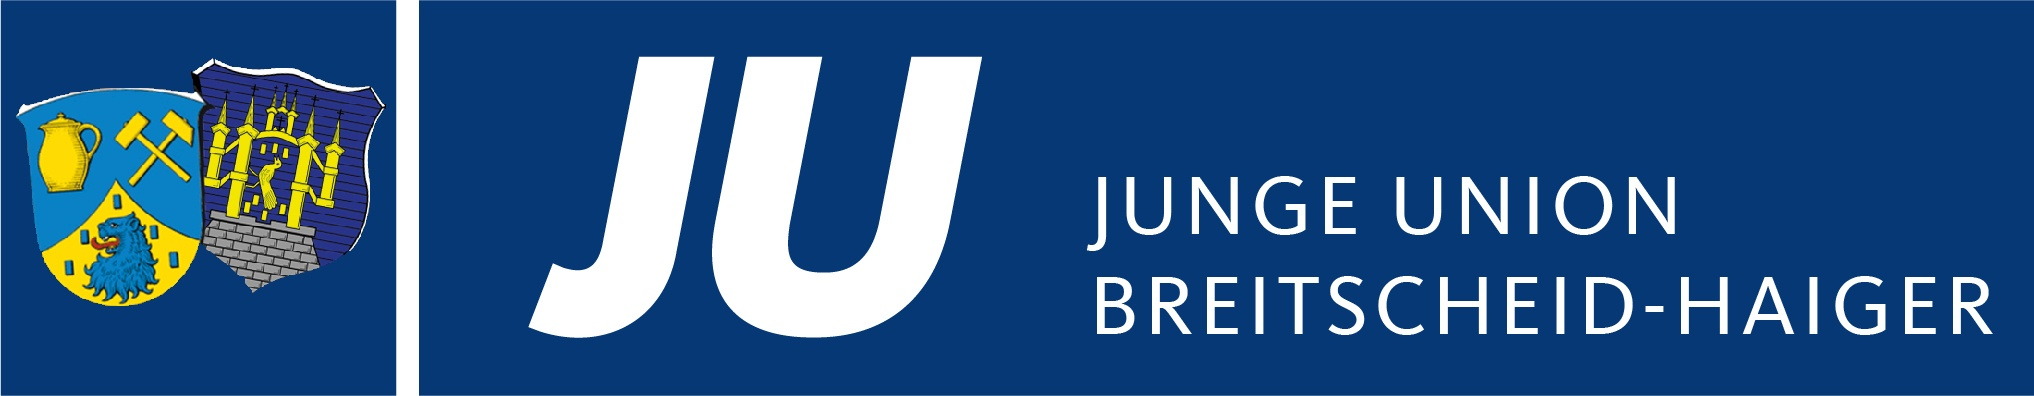 Logo von Junge Union Breitscheid-Haiger